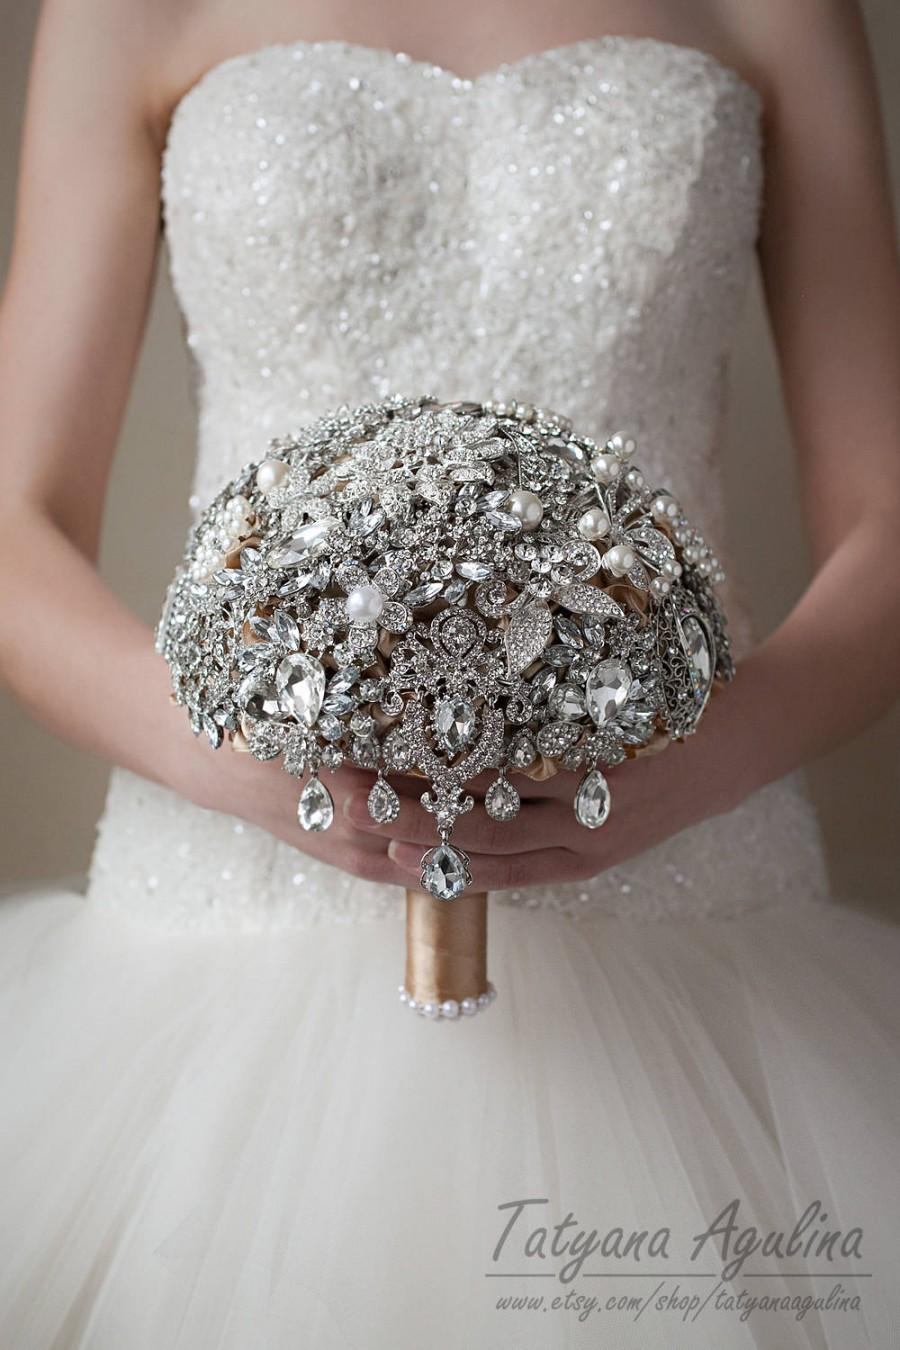 Mariage - READY TO SHIP Brooch Bouquet Wedding Bouquet, Bridal Bouquet, Bridesmaids Bouquet Champagne Silver Bouquet, Crystal Bouquet, Broach Bouquet